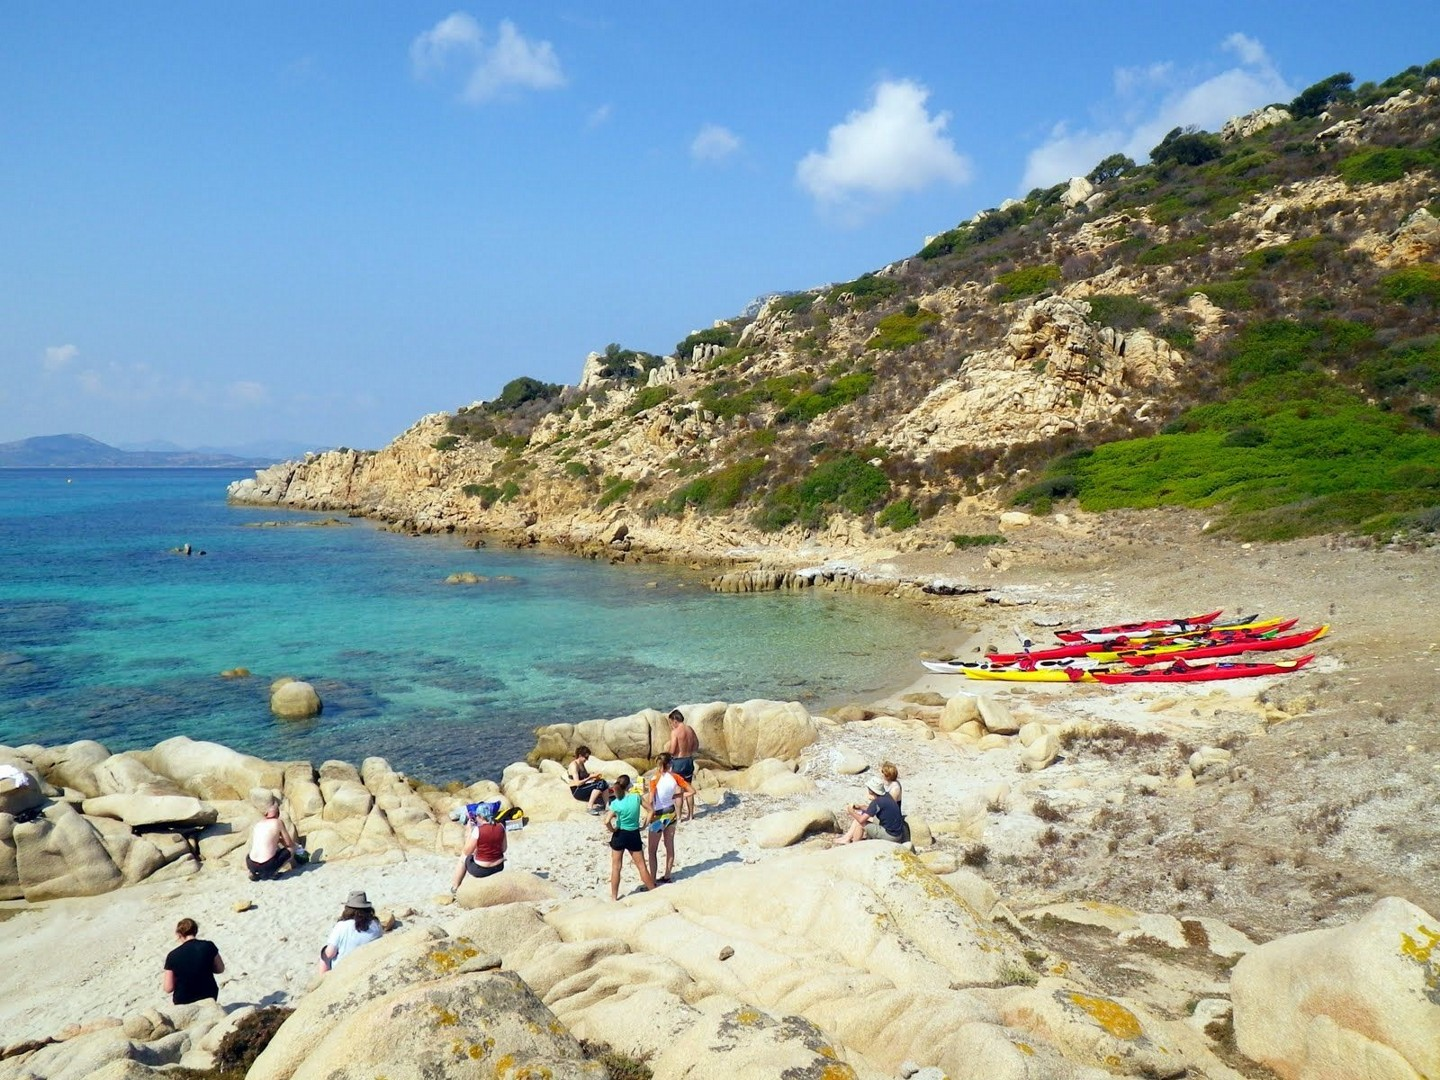 Kayak 5.jpg - Sardinia - Daily Kayaking Trips - Kayaking